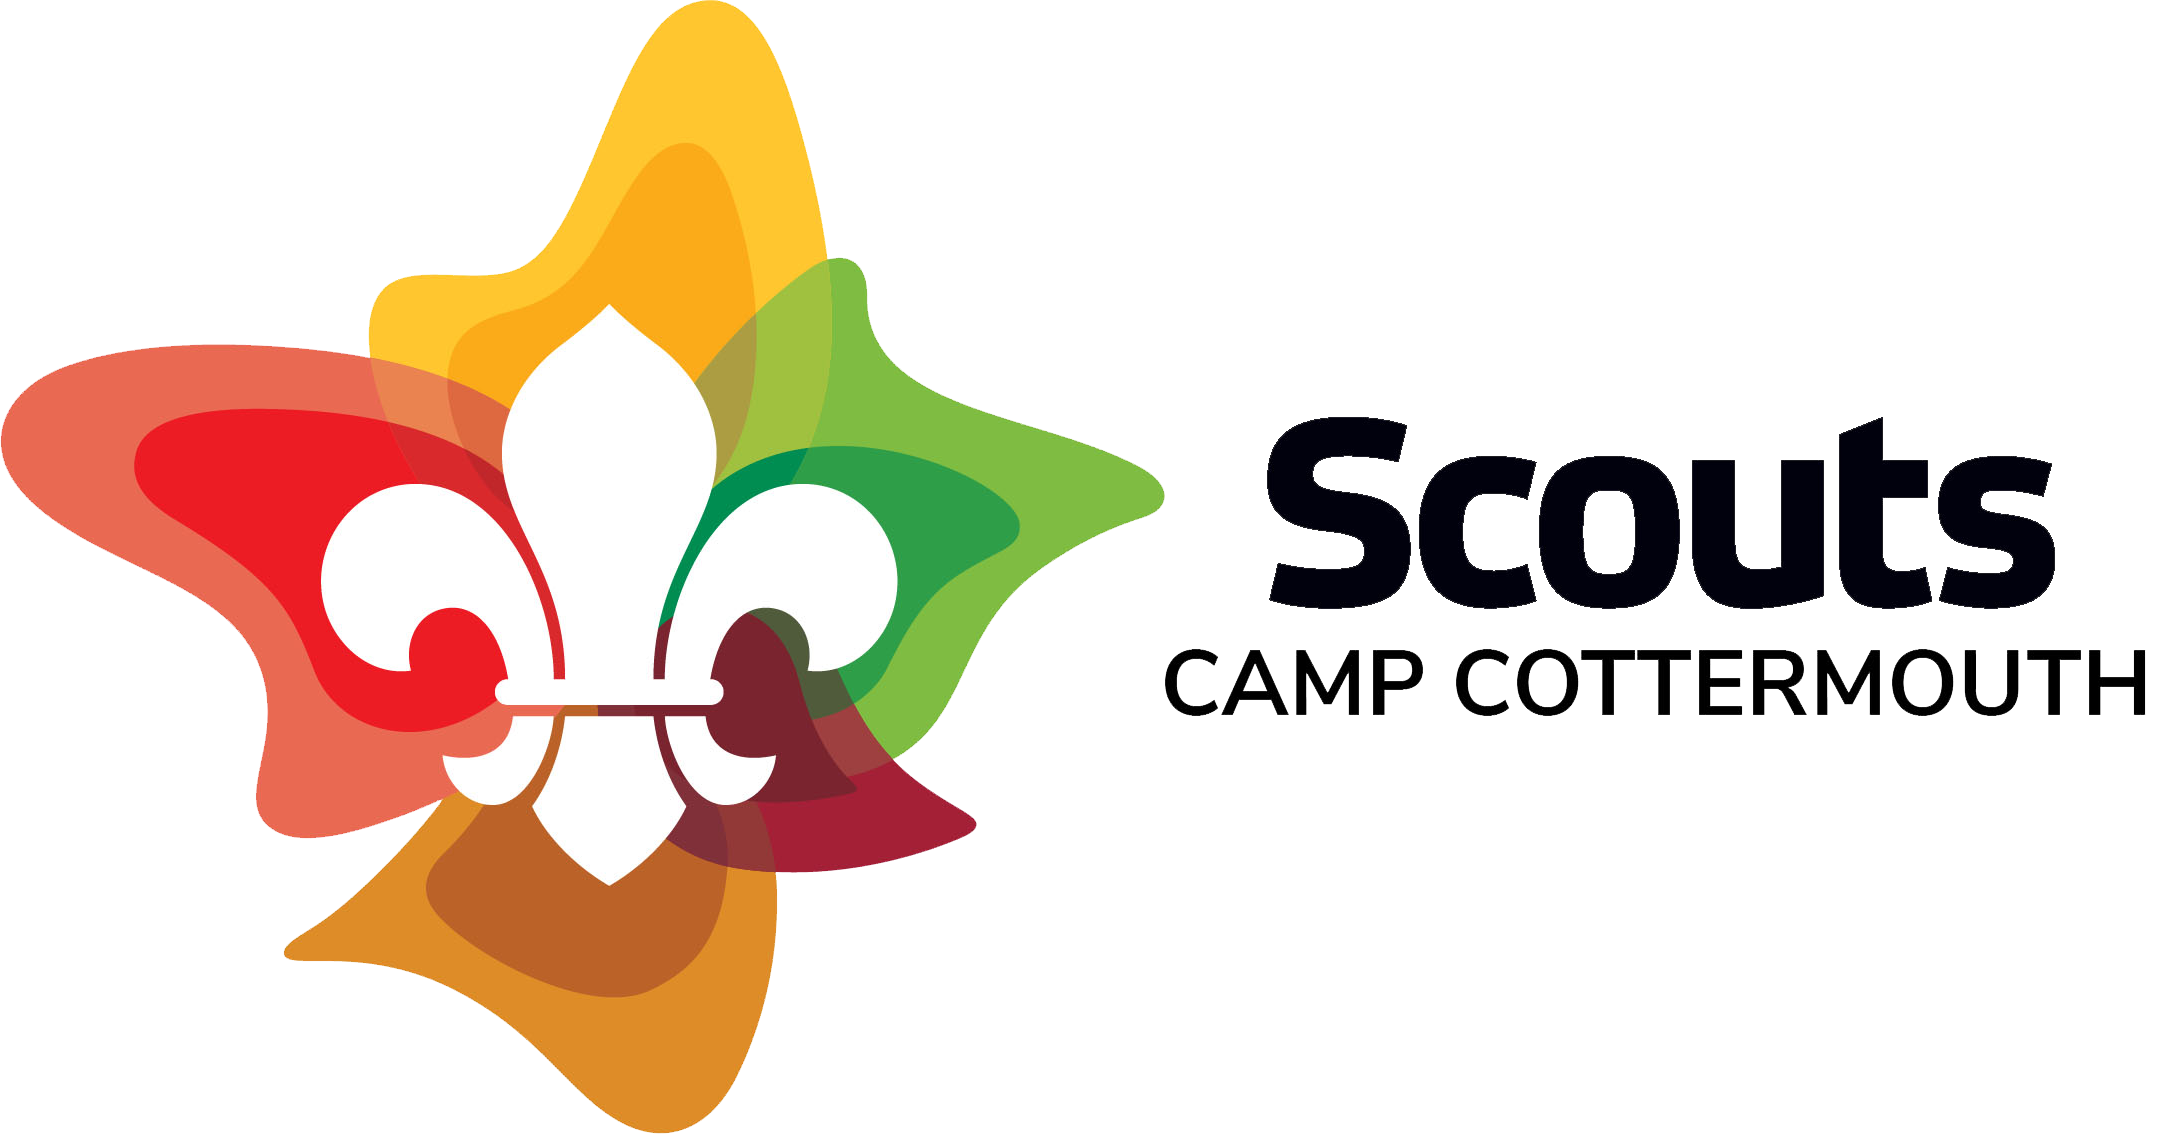 Camp Cottermouth logo